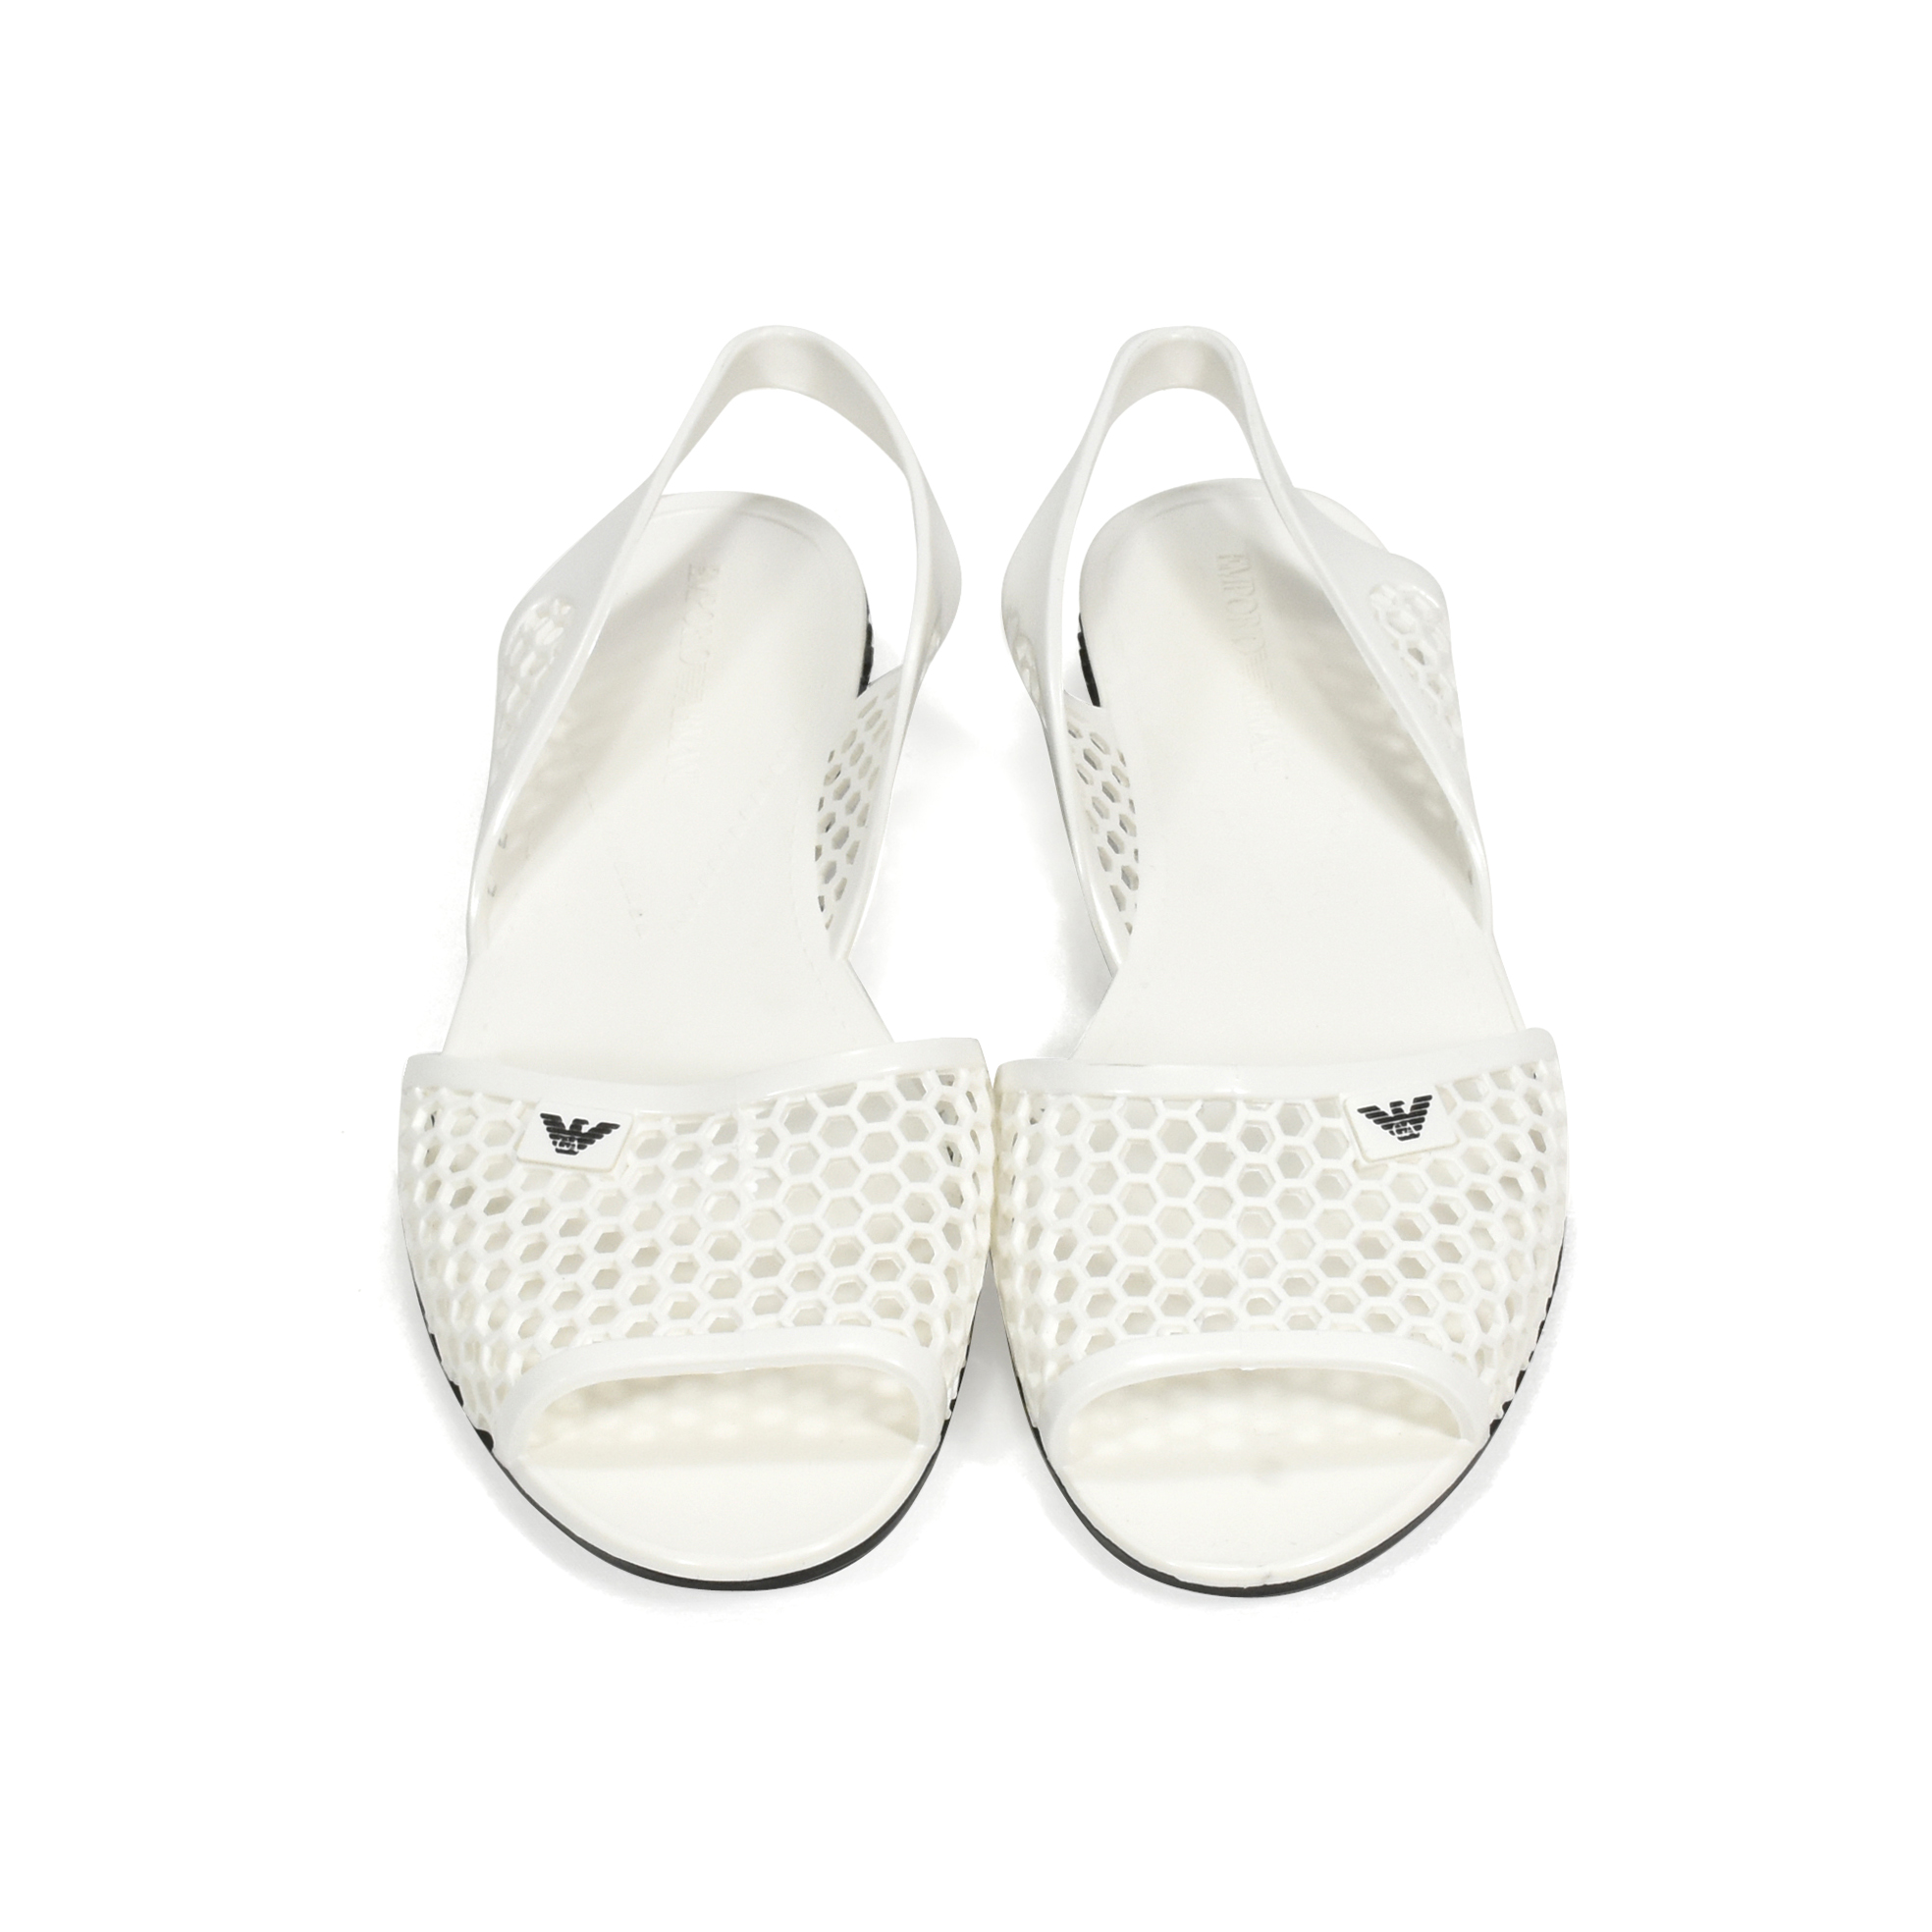 3a1661705 Authentic Second Hand Emporio Armani Perforated Jelly Slingbacks  (PSS-369-00040)